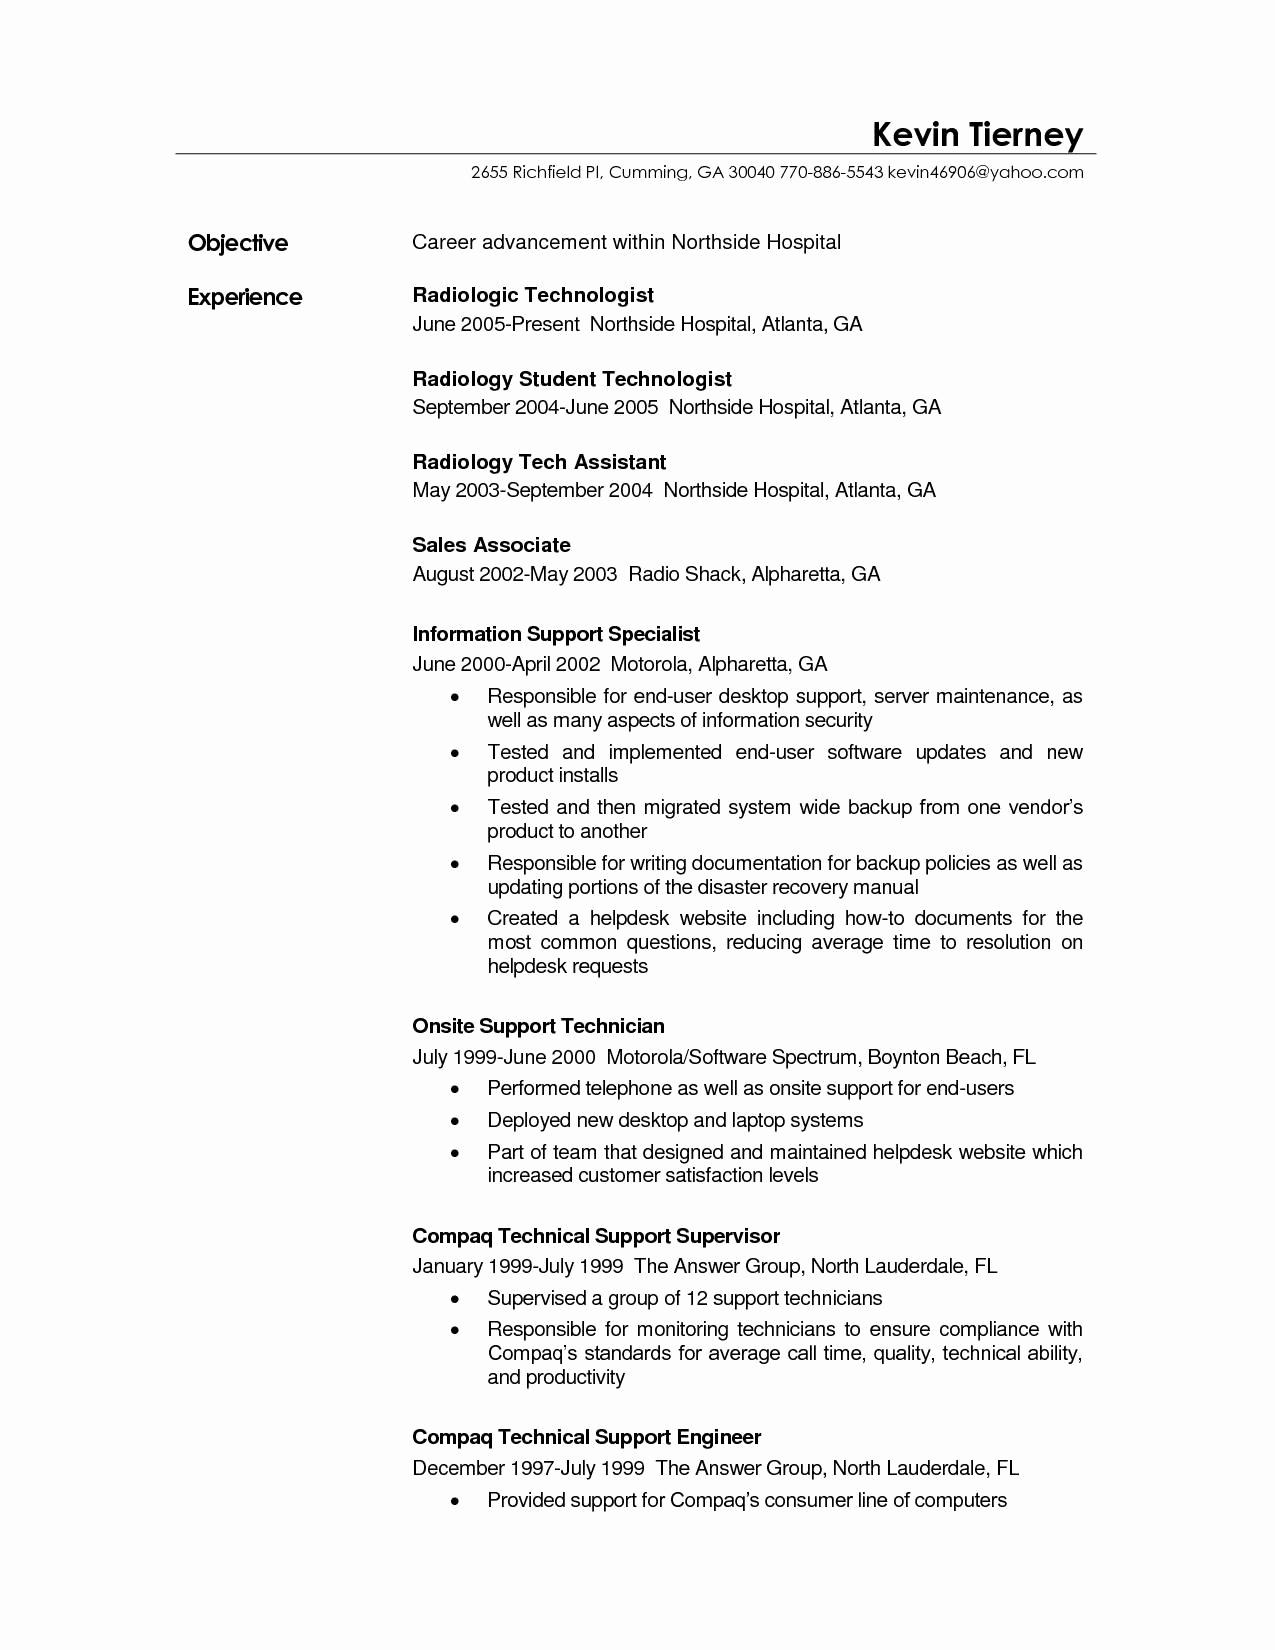 surgical technician resume template example-37 Fresh Surgical Tech Resume Sample 11-r